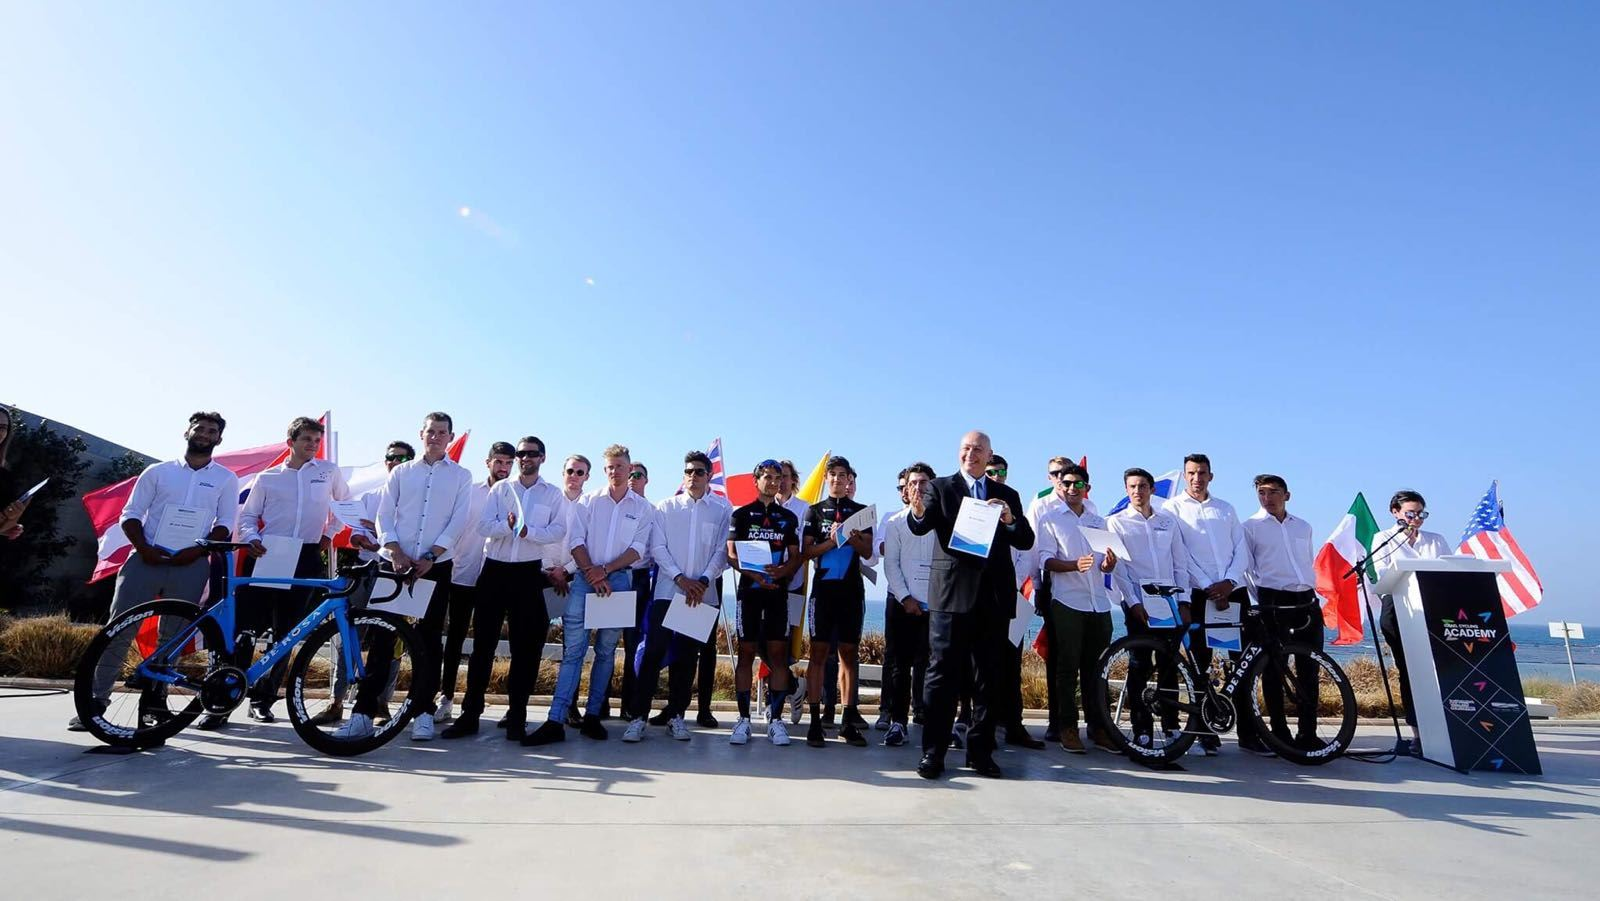 8b7b27a8c02 The Israel Cycling Academy team at the Peres Center in Jaffa